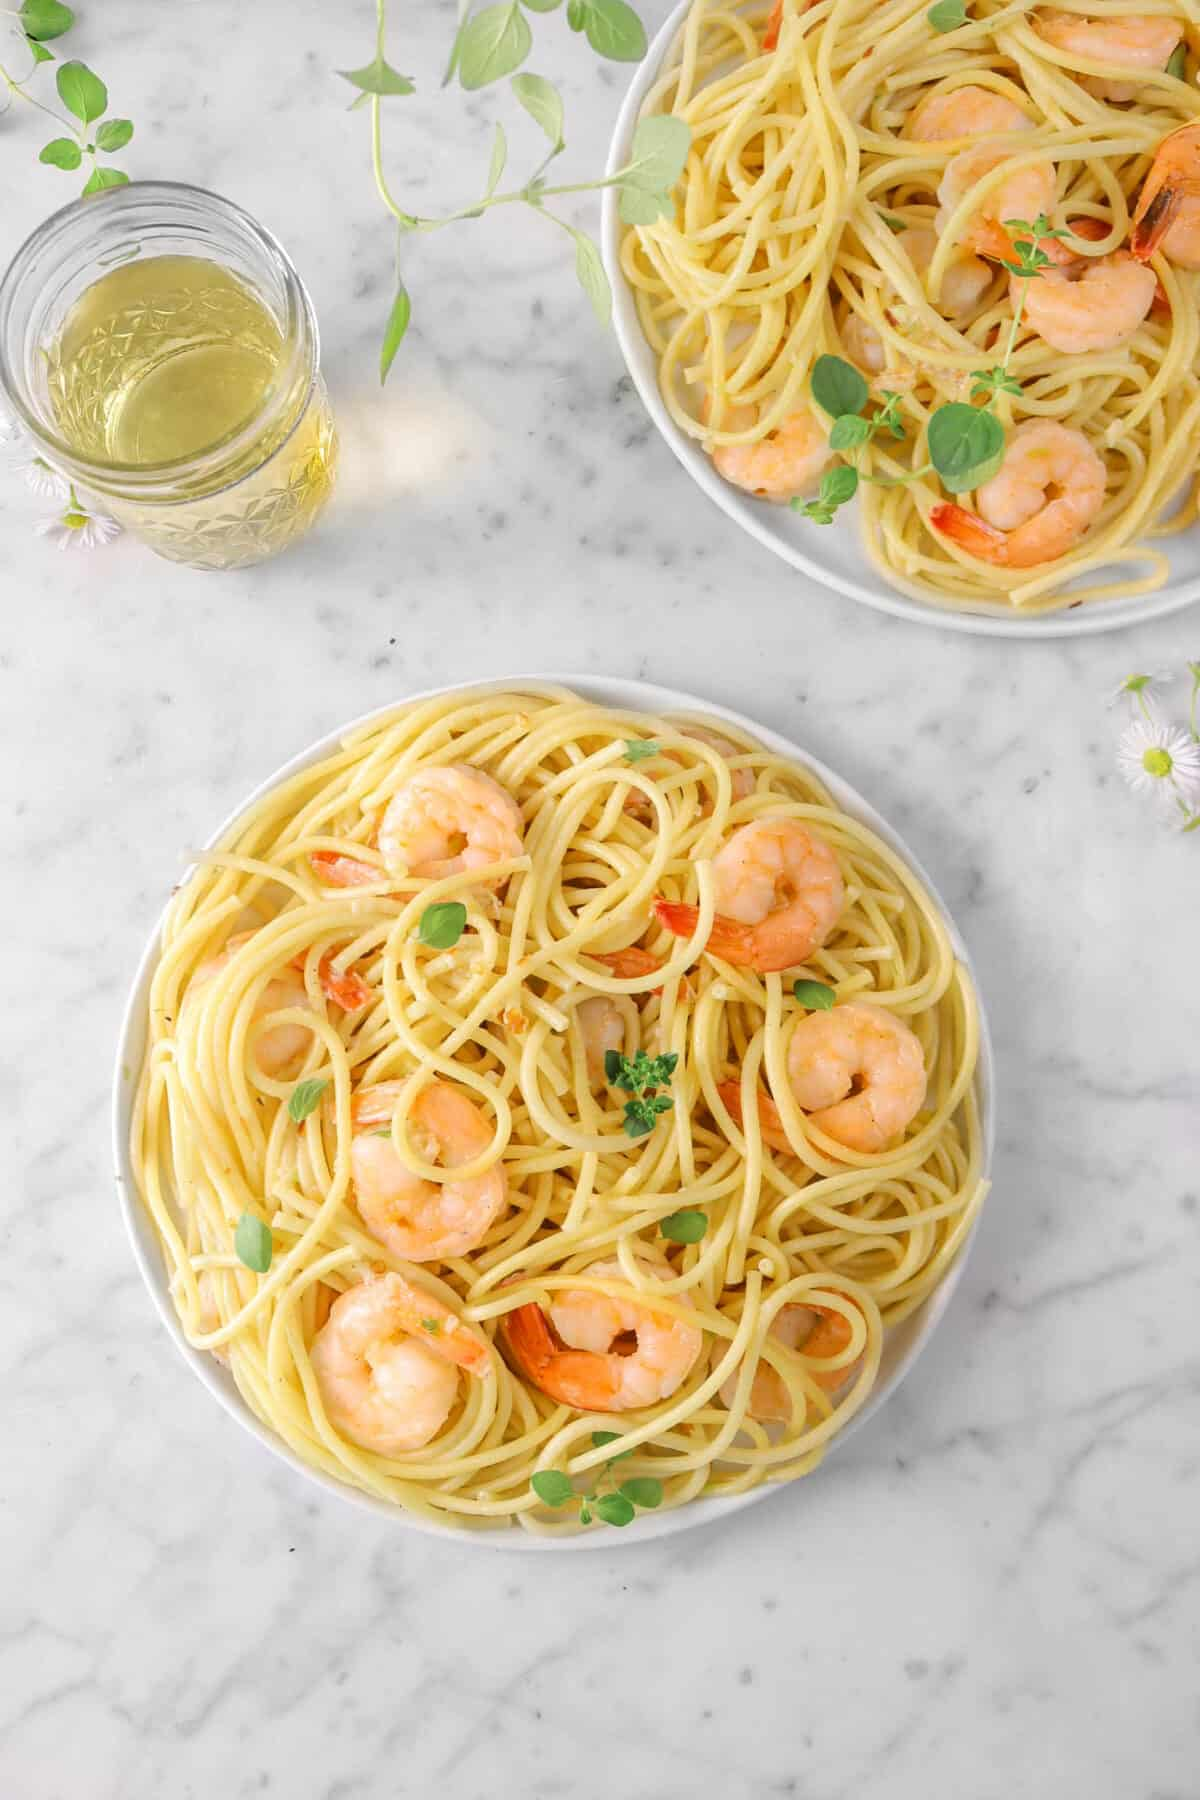 two plates of shrimp scampi with oregano, flowers, and white wine